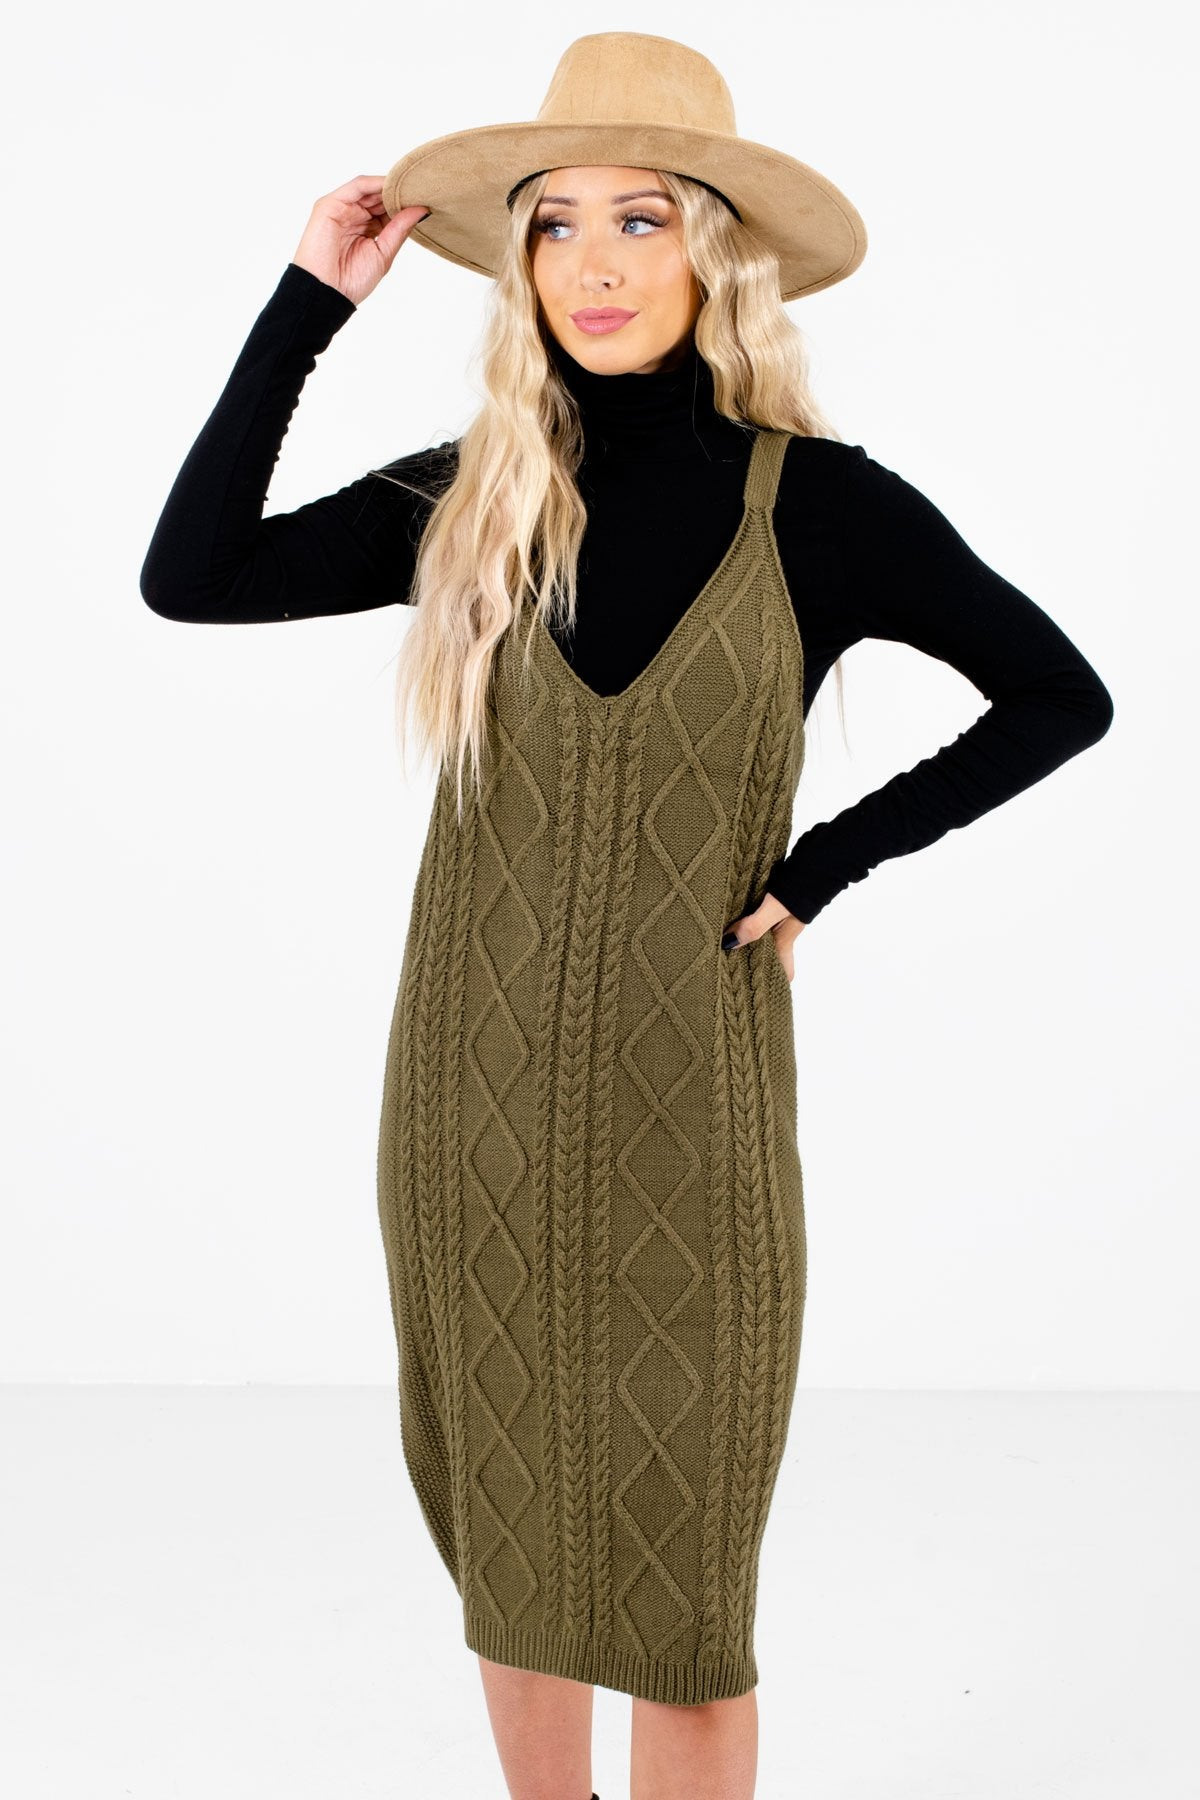 Olive Green High-Quality Knit Material Boutique Dresses for Women